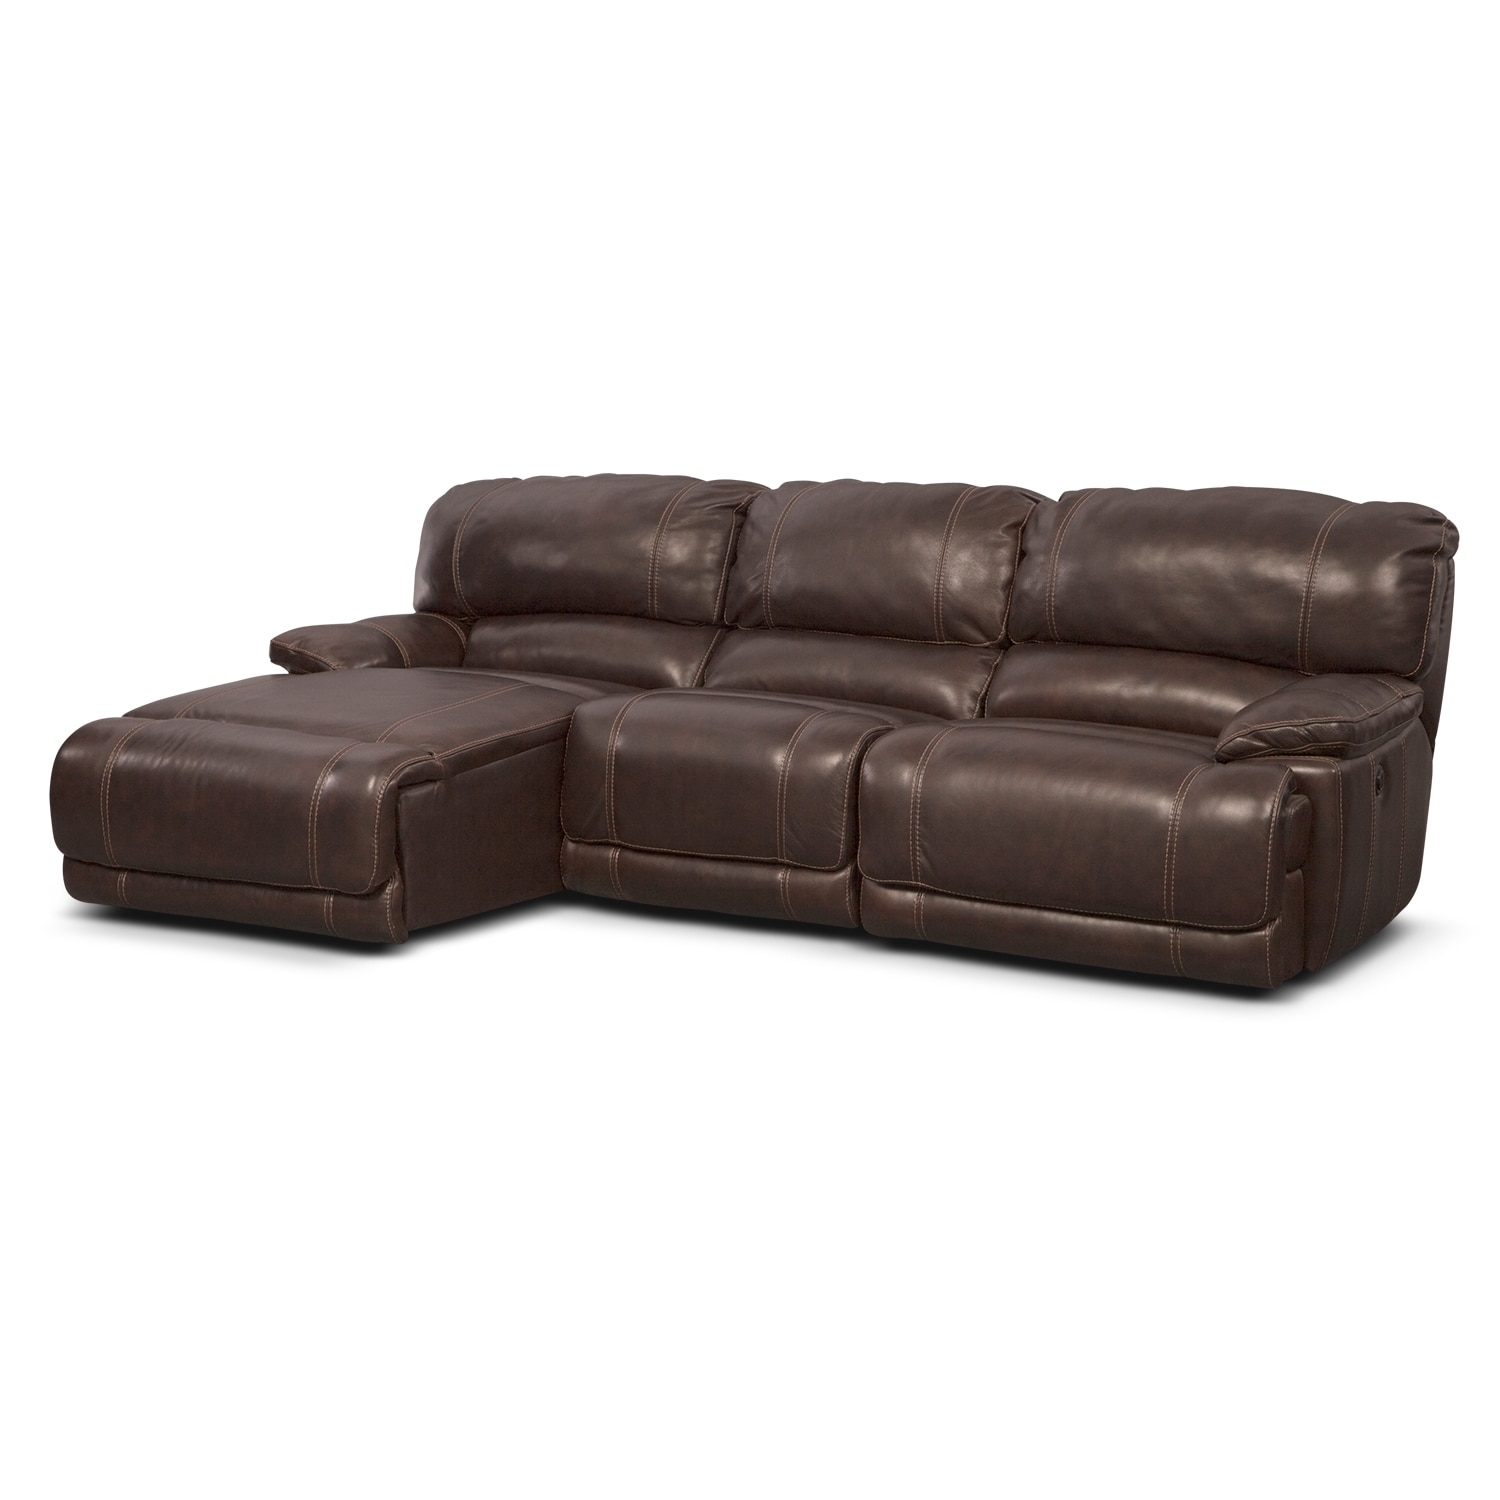 St. Malo 3-Piece Power Reclining Sectional with Left-Facing Chaise - Brown